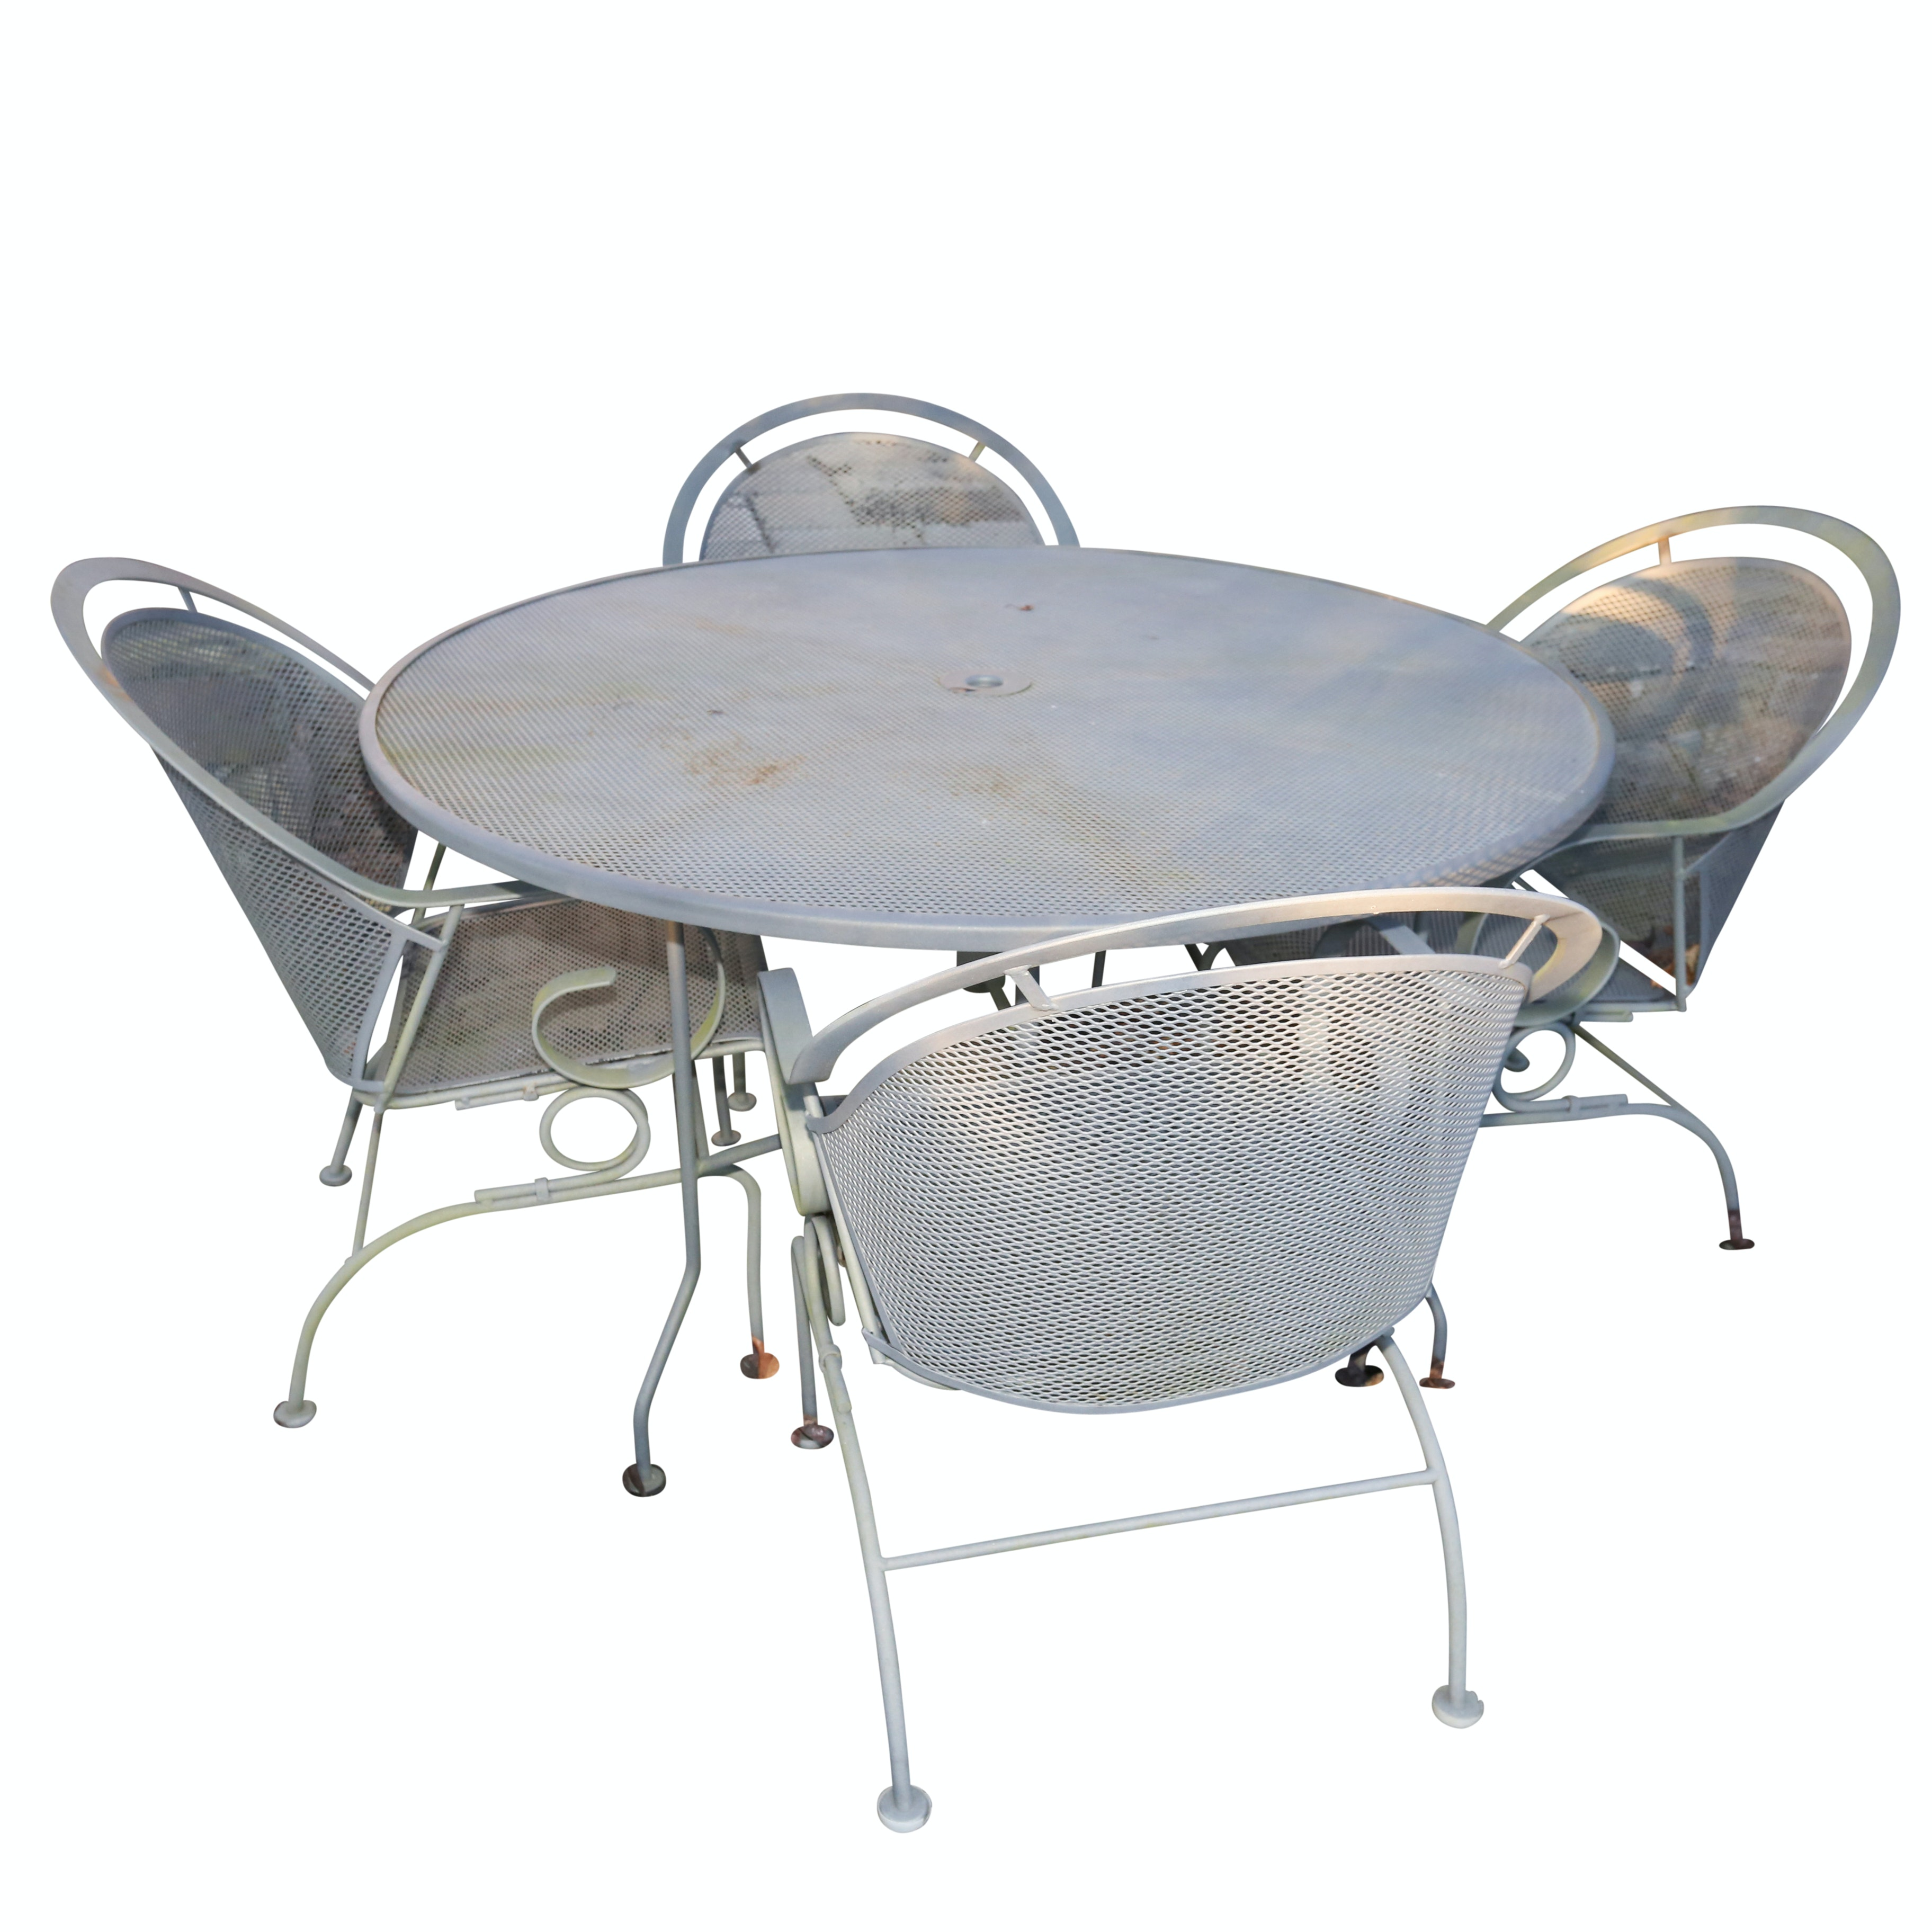 Metal Patio Table and Chairs Set, 21st Century